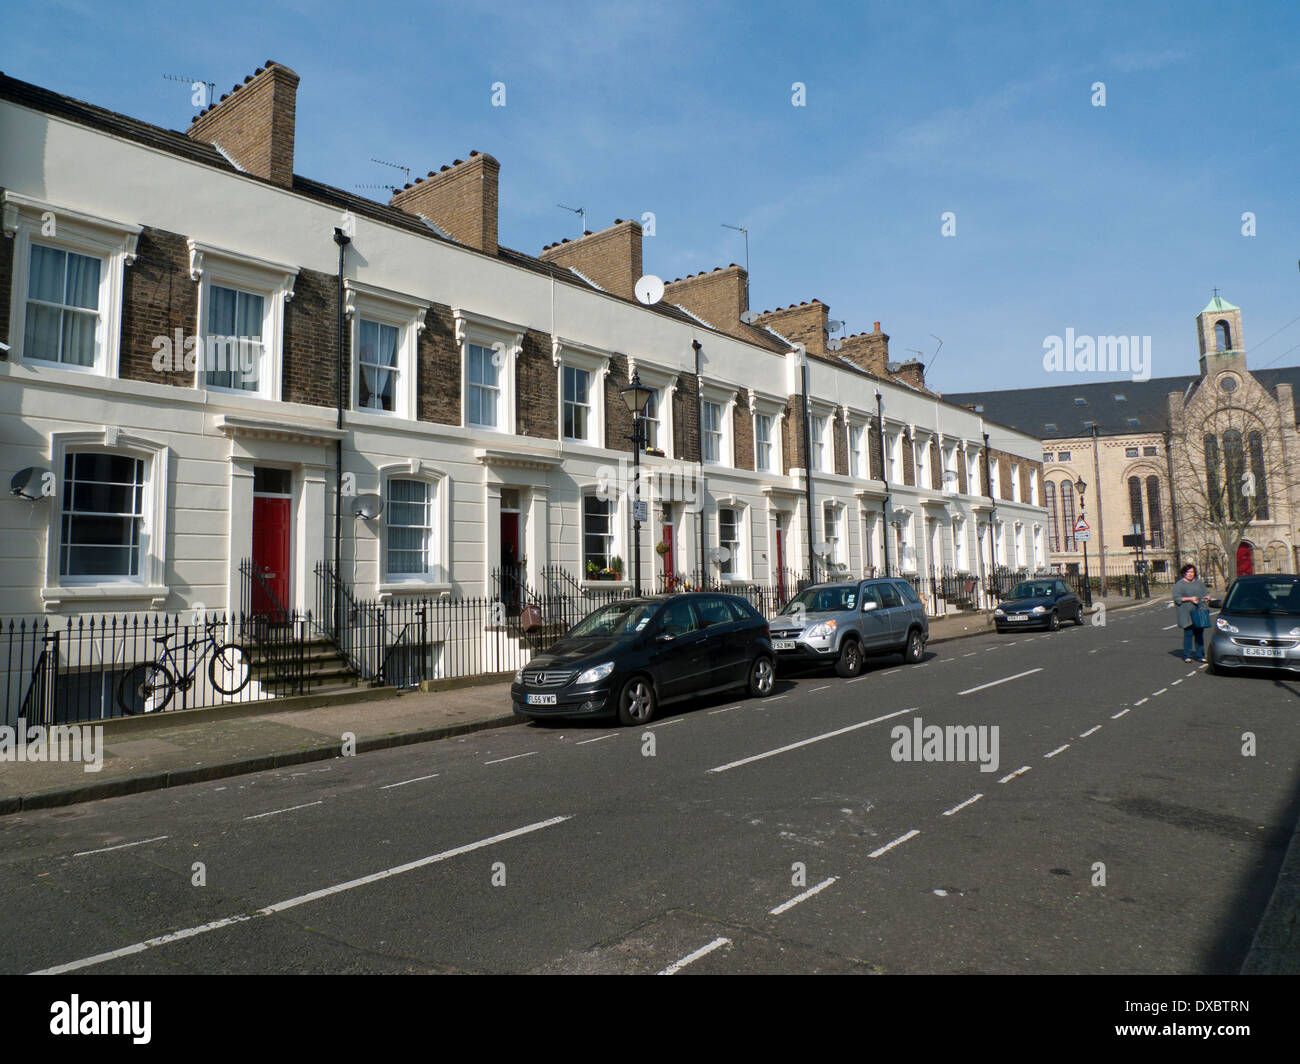 A view of a row of terraced houses in Cephas Avenue BETHNAL GREEN Tower Hamlets East London E1   KATHY DEWITT - Stock Image